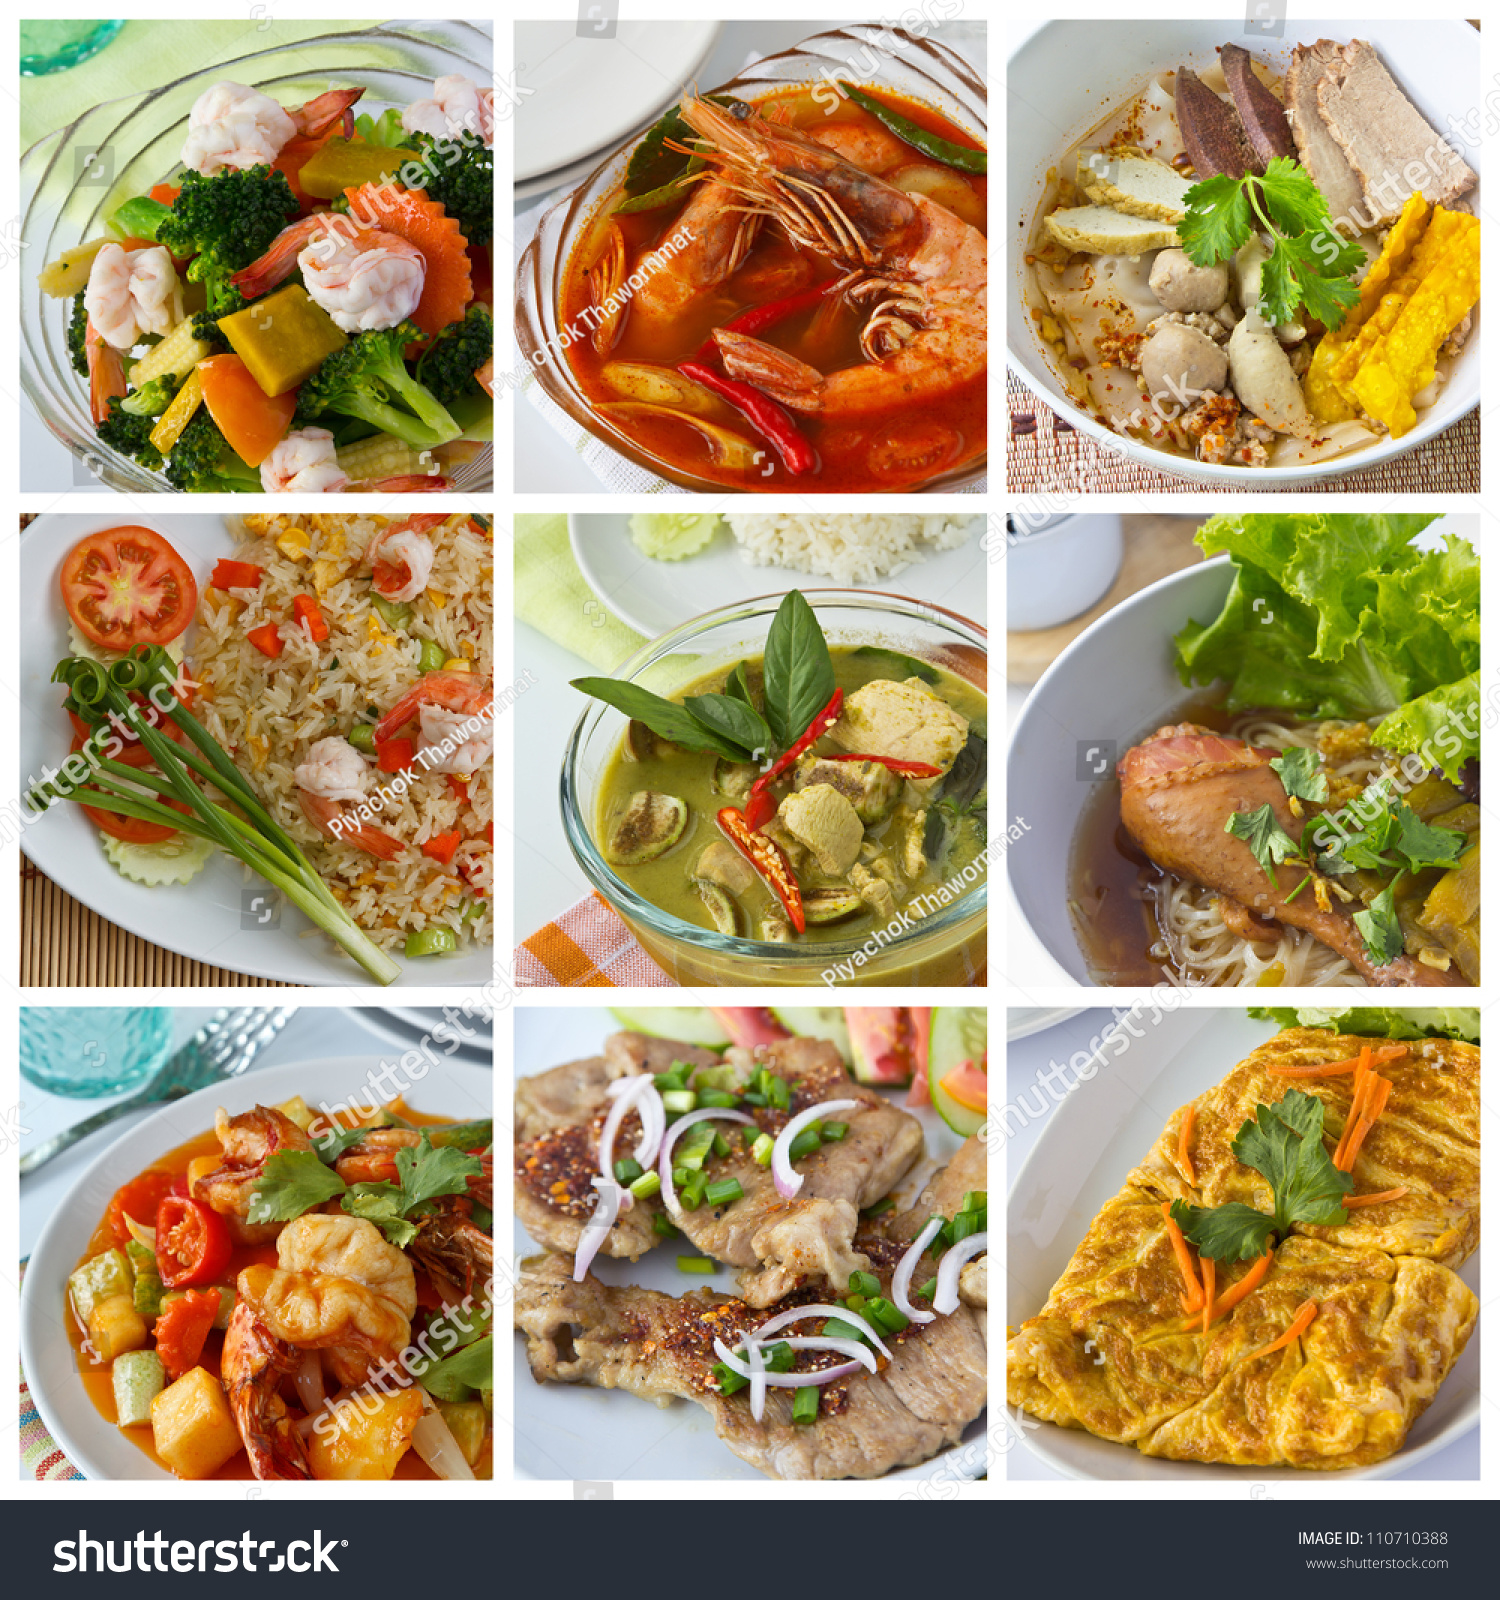 http://image.shutterstock.com/z/stock-photo-collage-from-photographs-of-thai-food-110710388.jpg